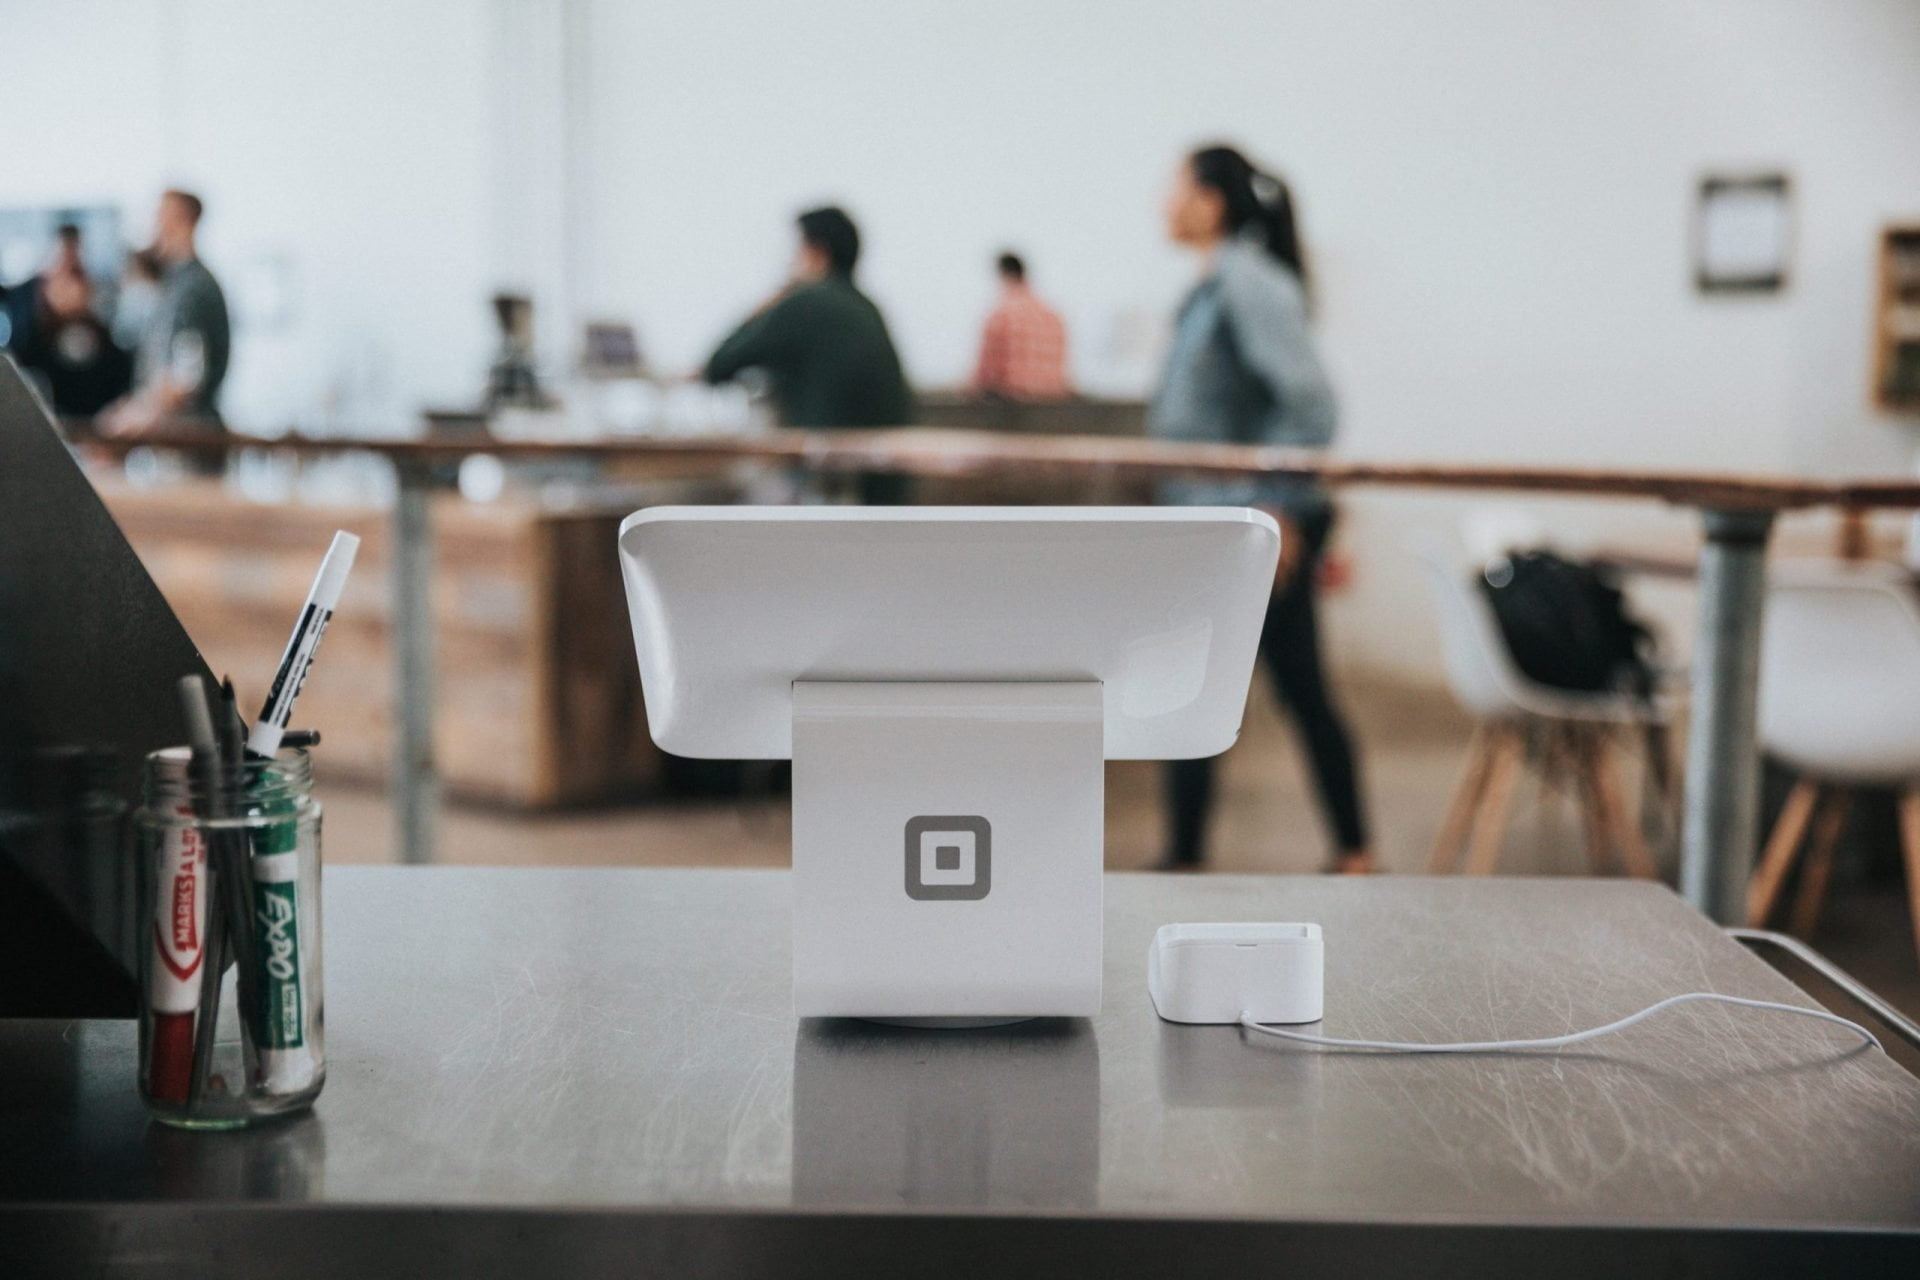 Square Crypto Goes Full Bitcoin, Hires Well-Known Blockstream Co-Founder 14